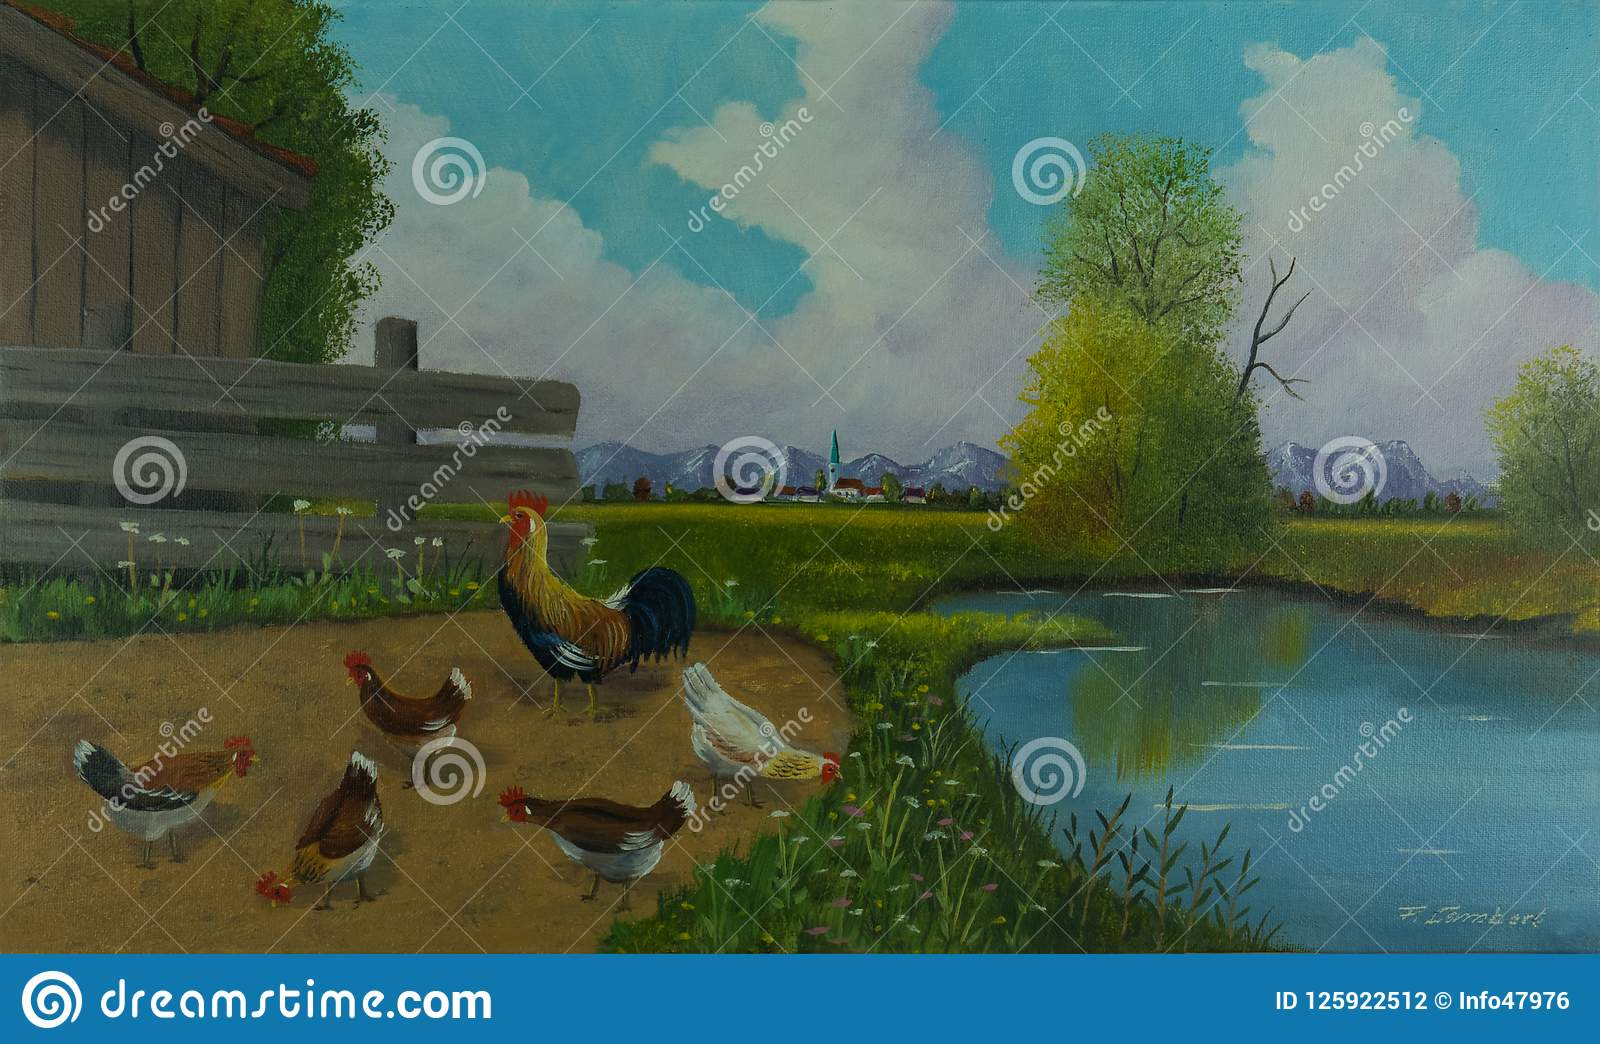 Five chickens and a big faucet beside the water